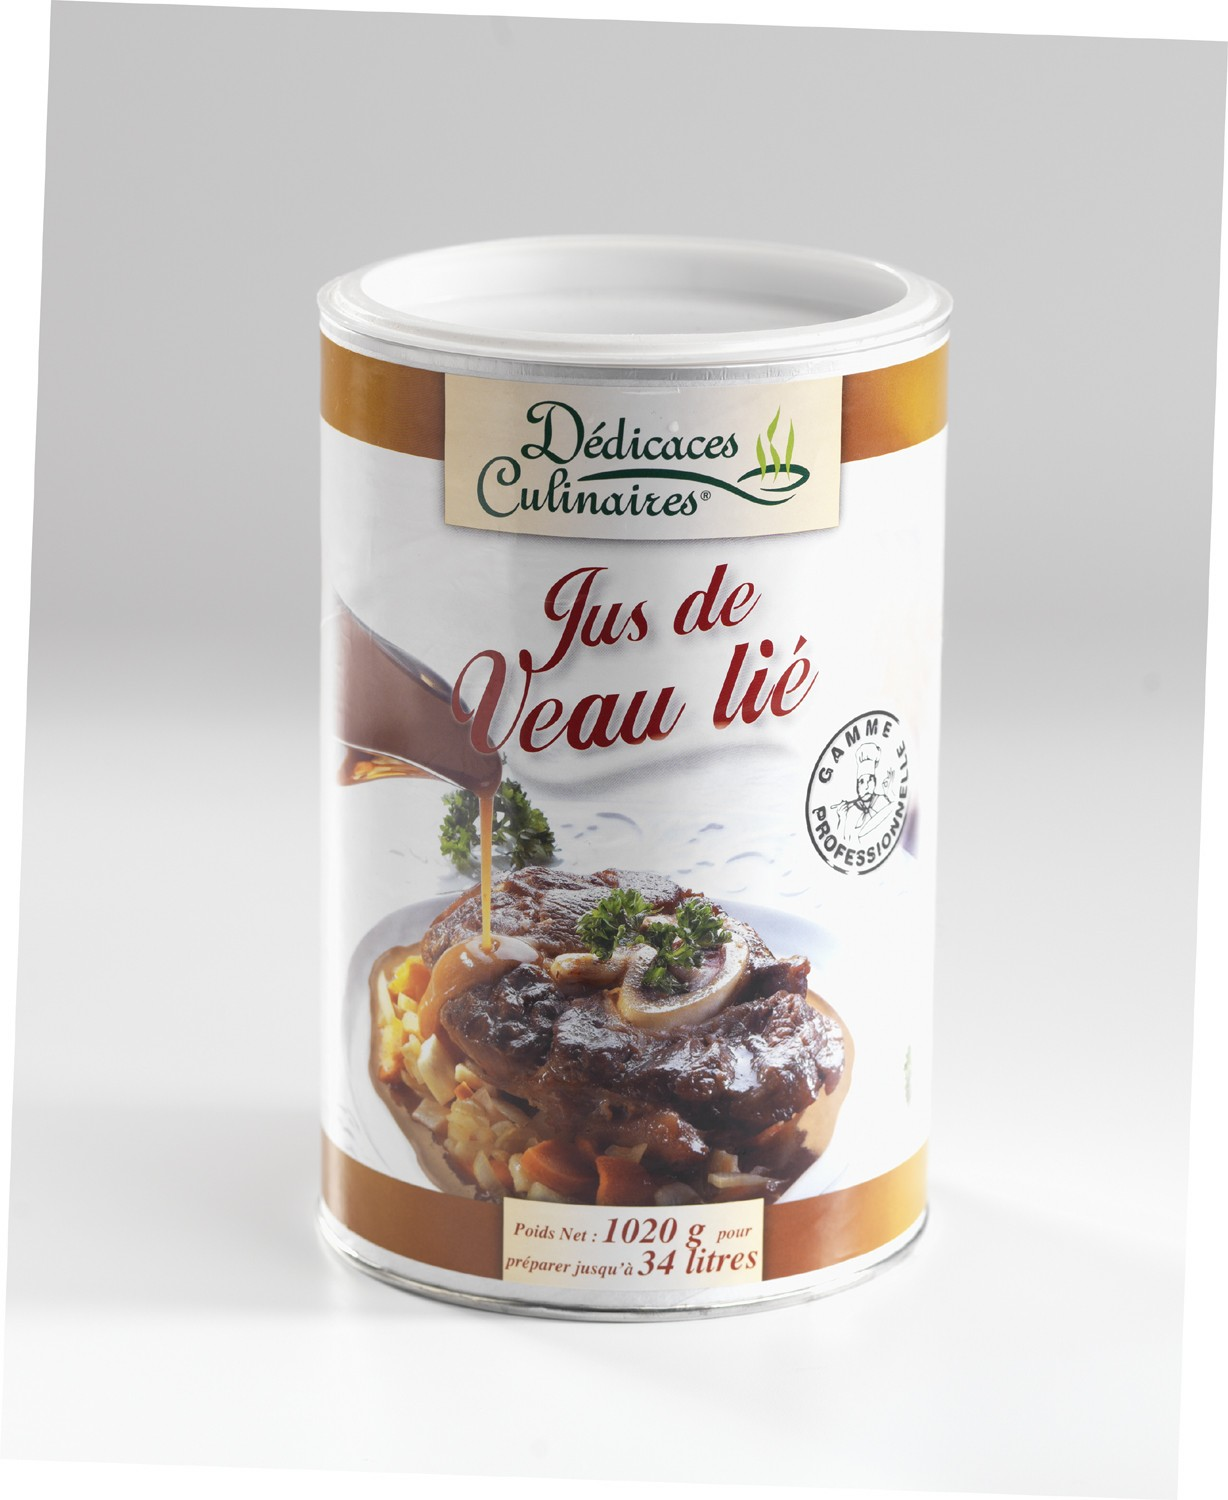 Jus De Veau Lie (Thickened Veal Stock)